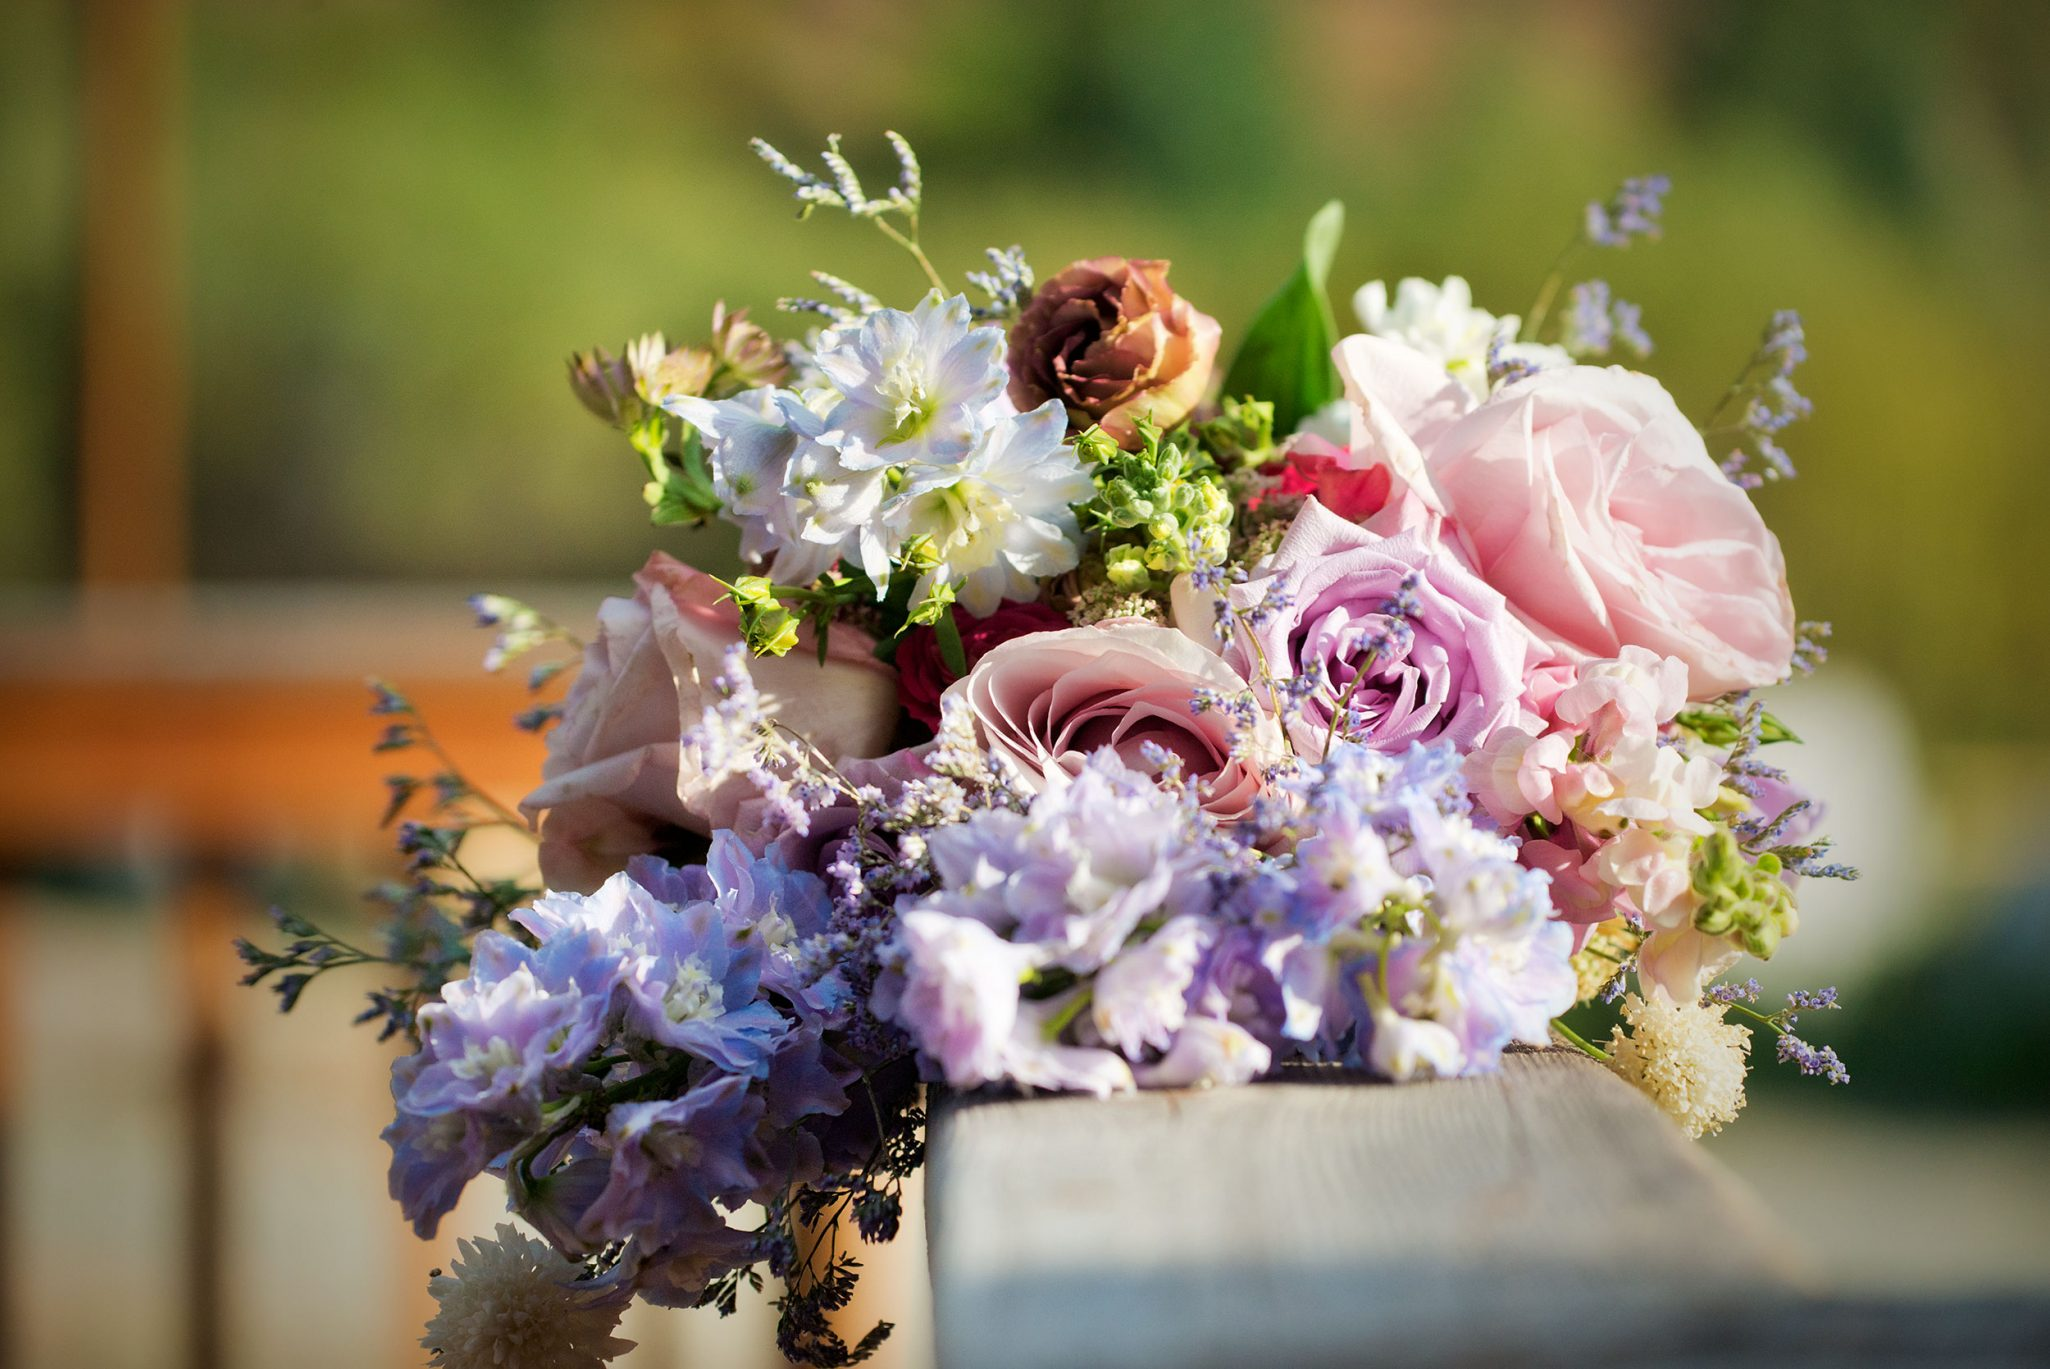 Flower bouquet from Mountain Adventure Wedding in Silverton, Colorado